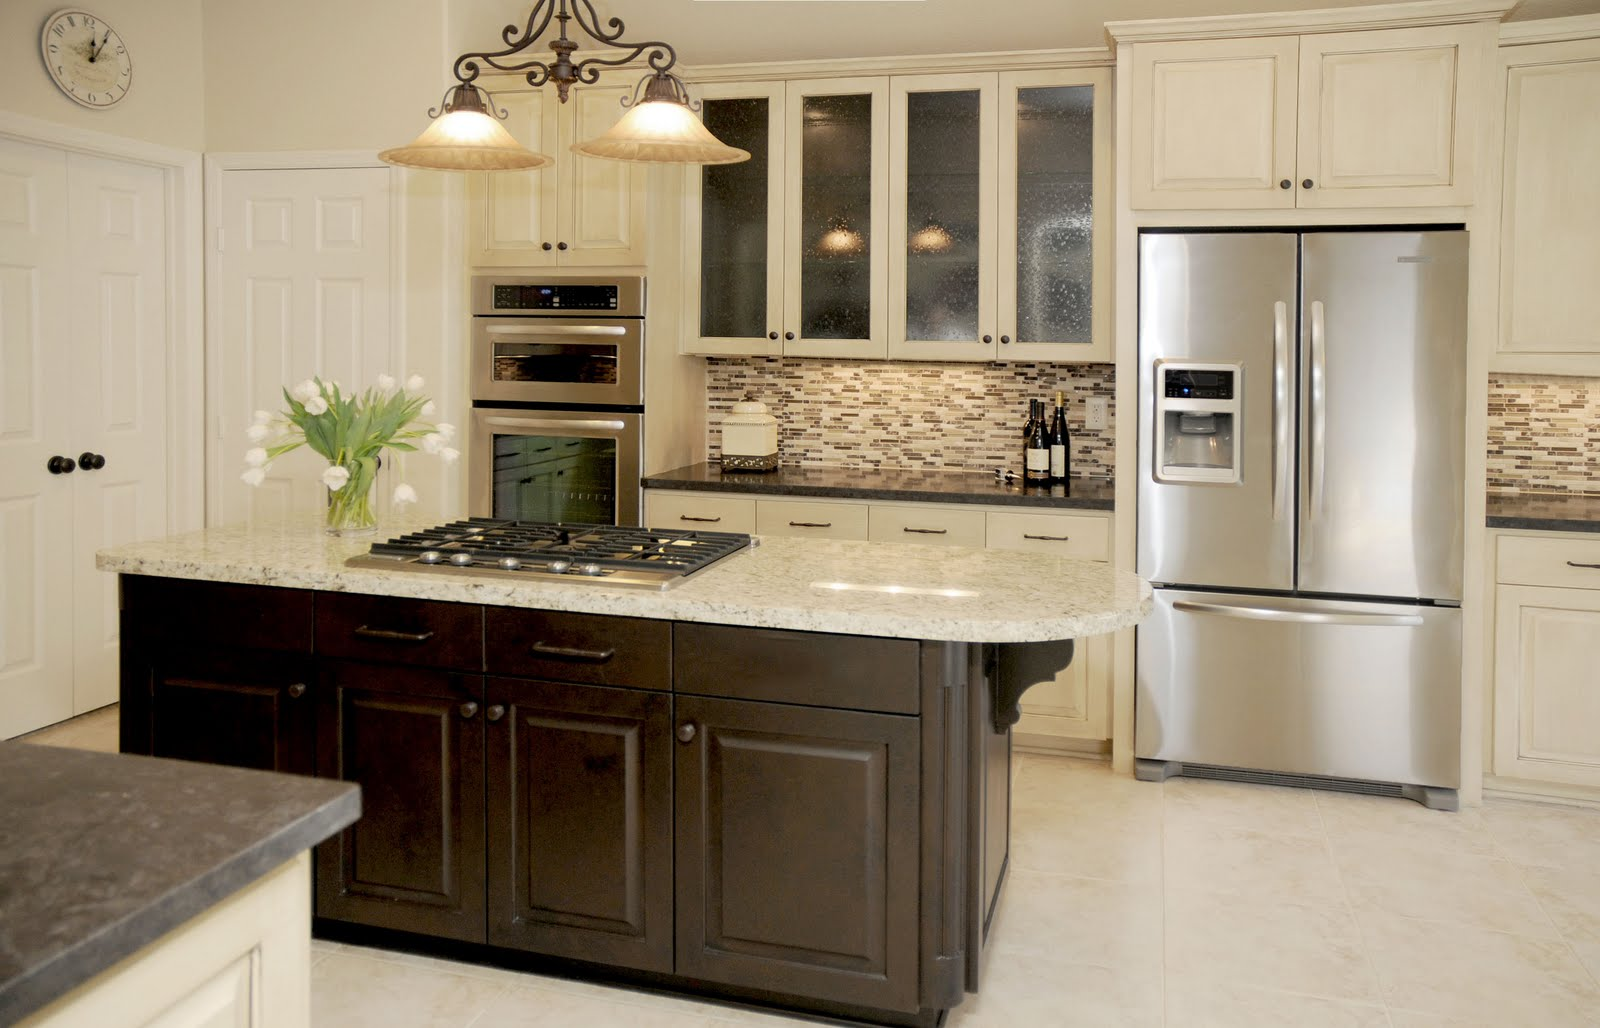 Galley kitchen remodels before and after kitchen design for Kitchen modeling ideas